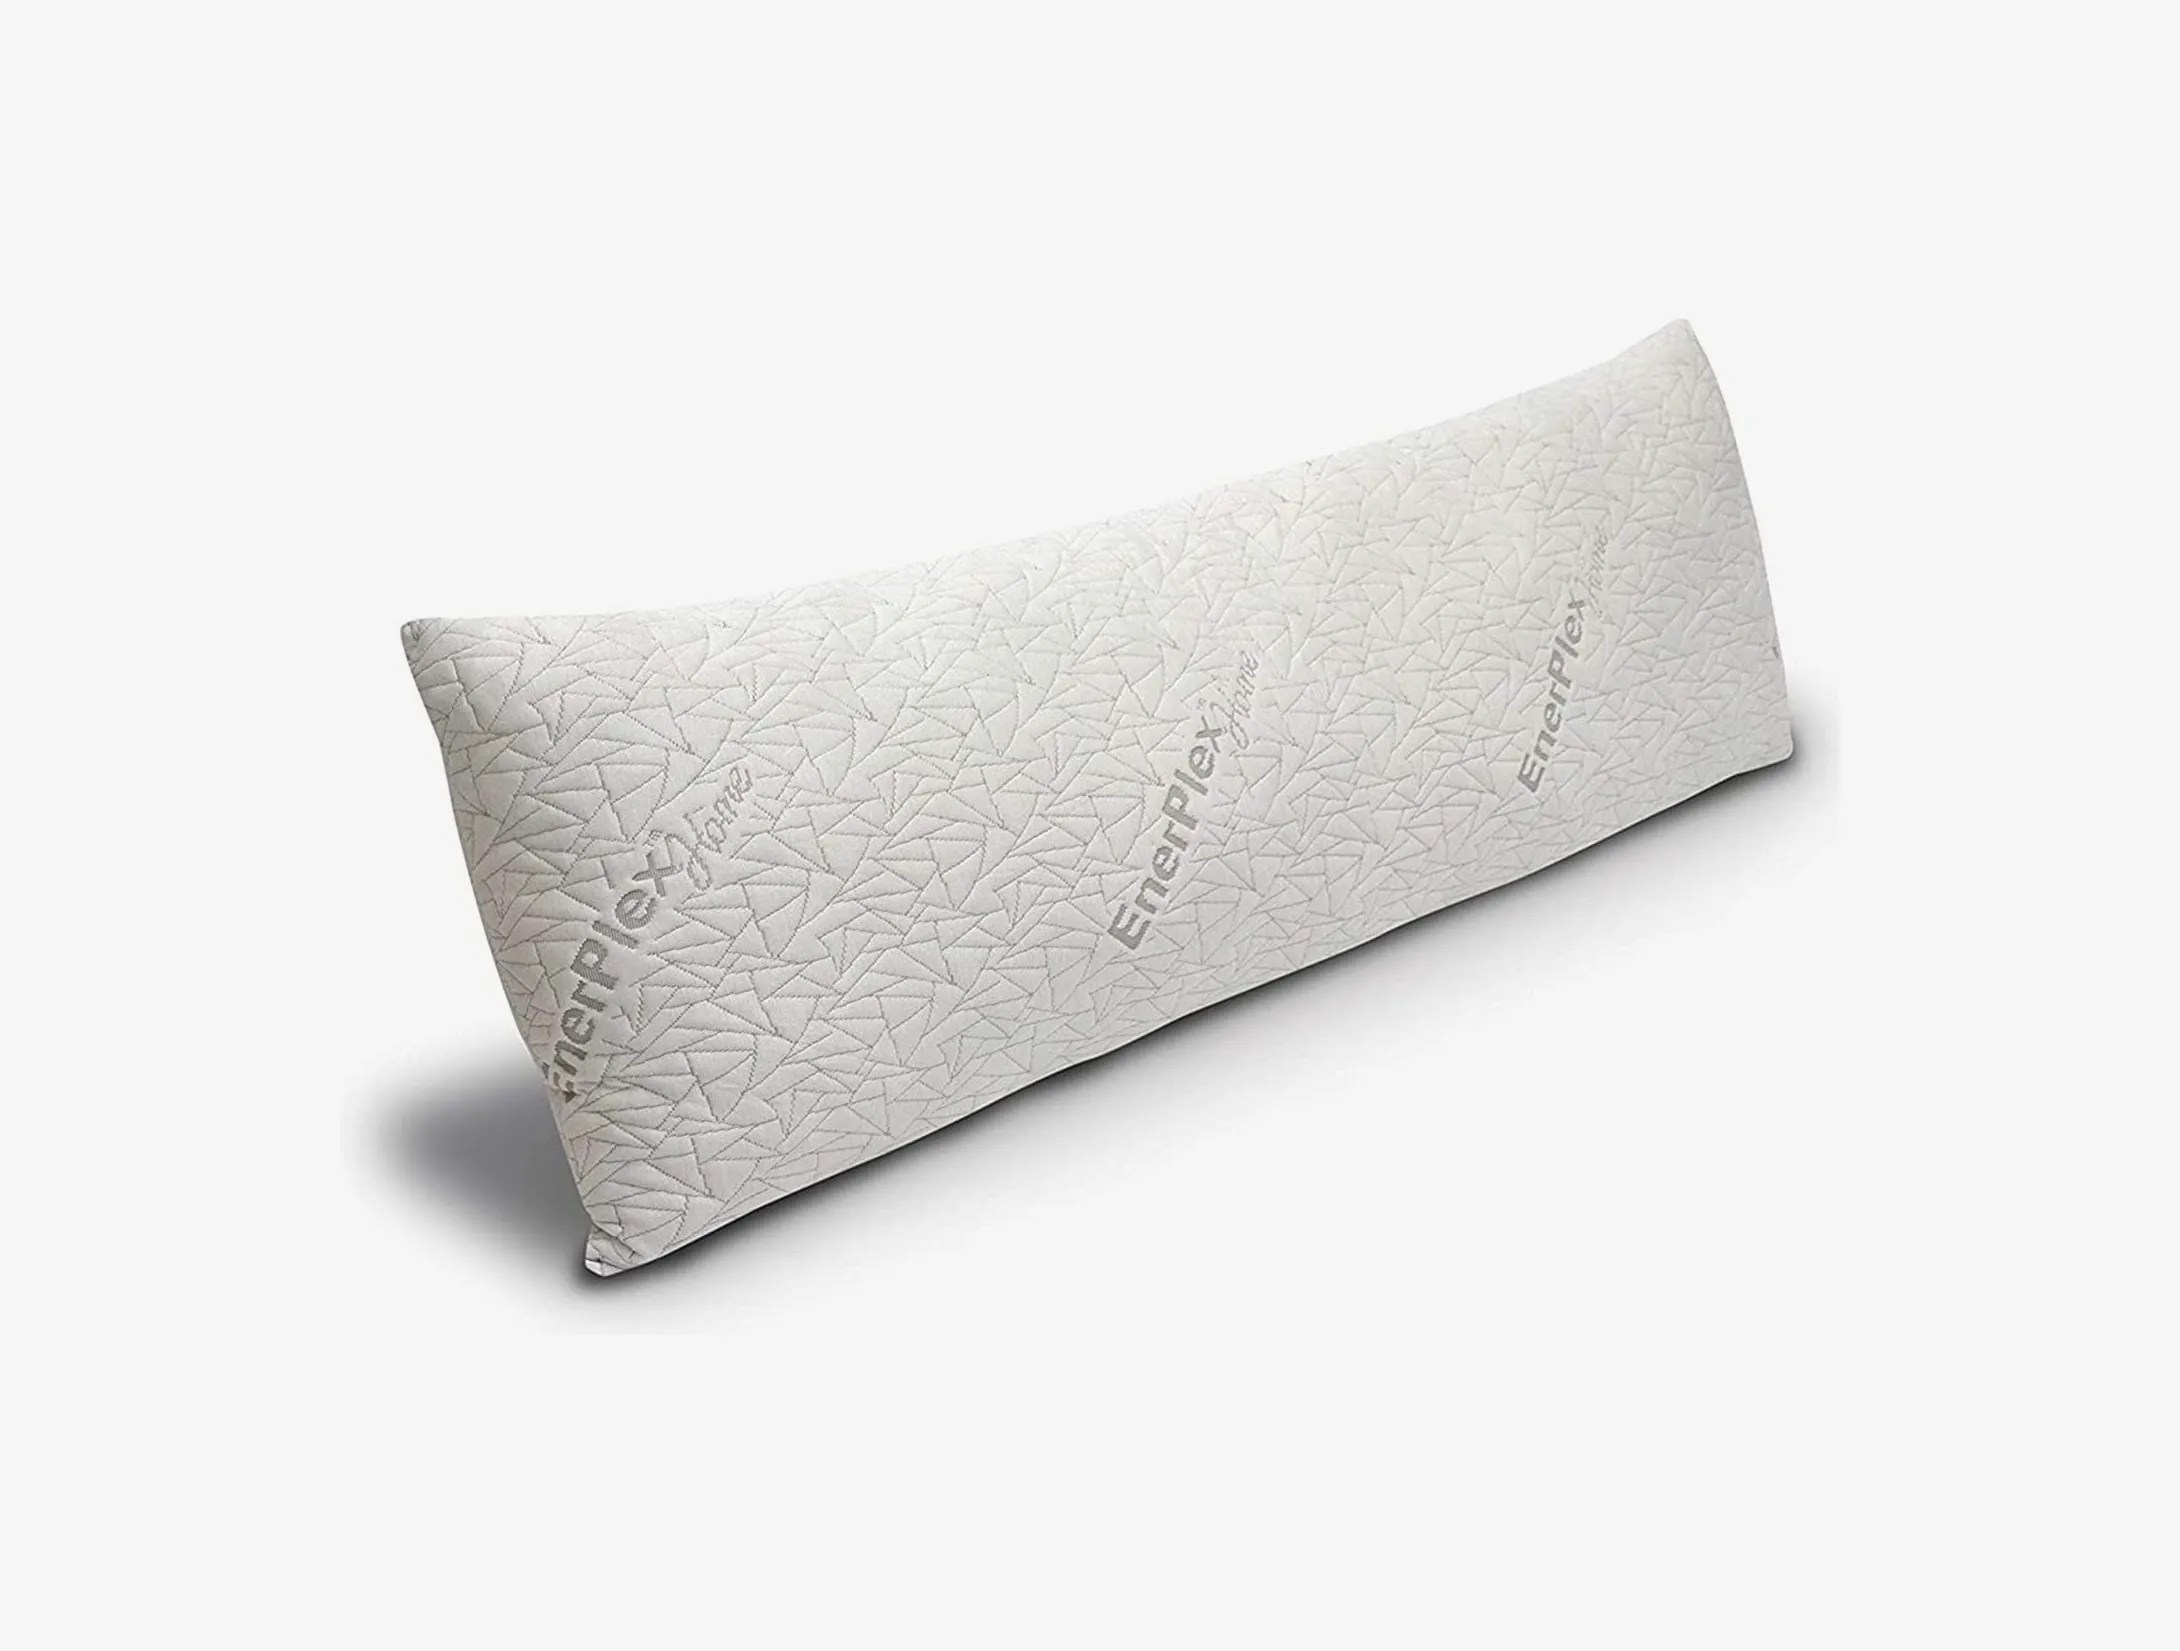 https nymag com strategist article best cooling pillows html